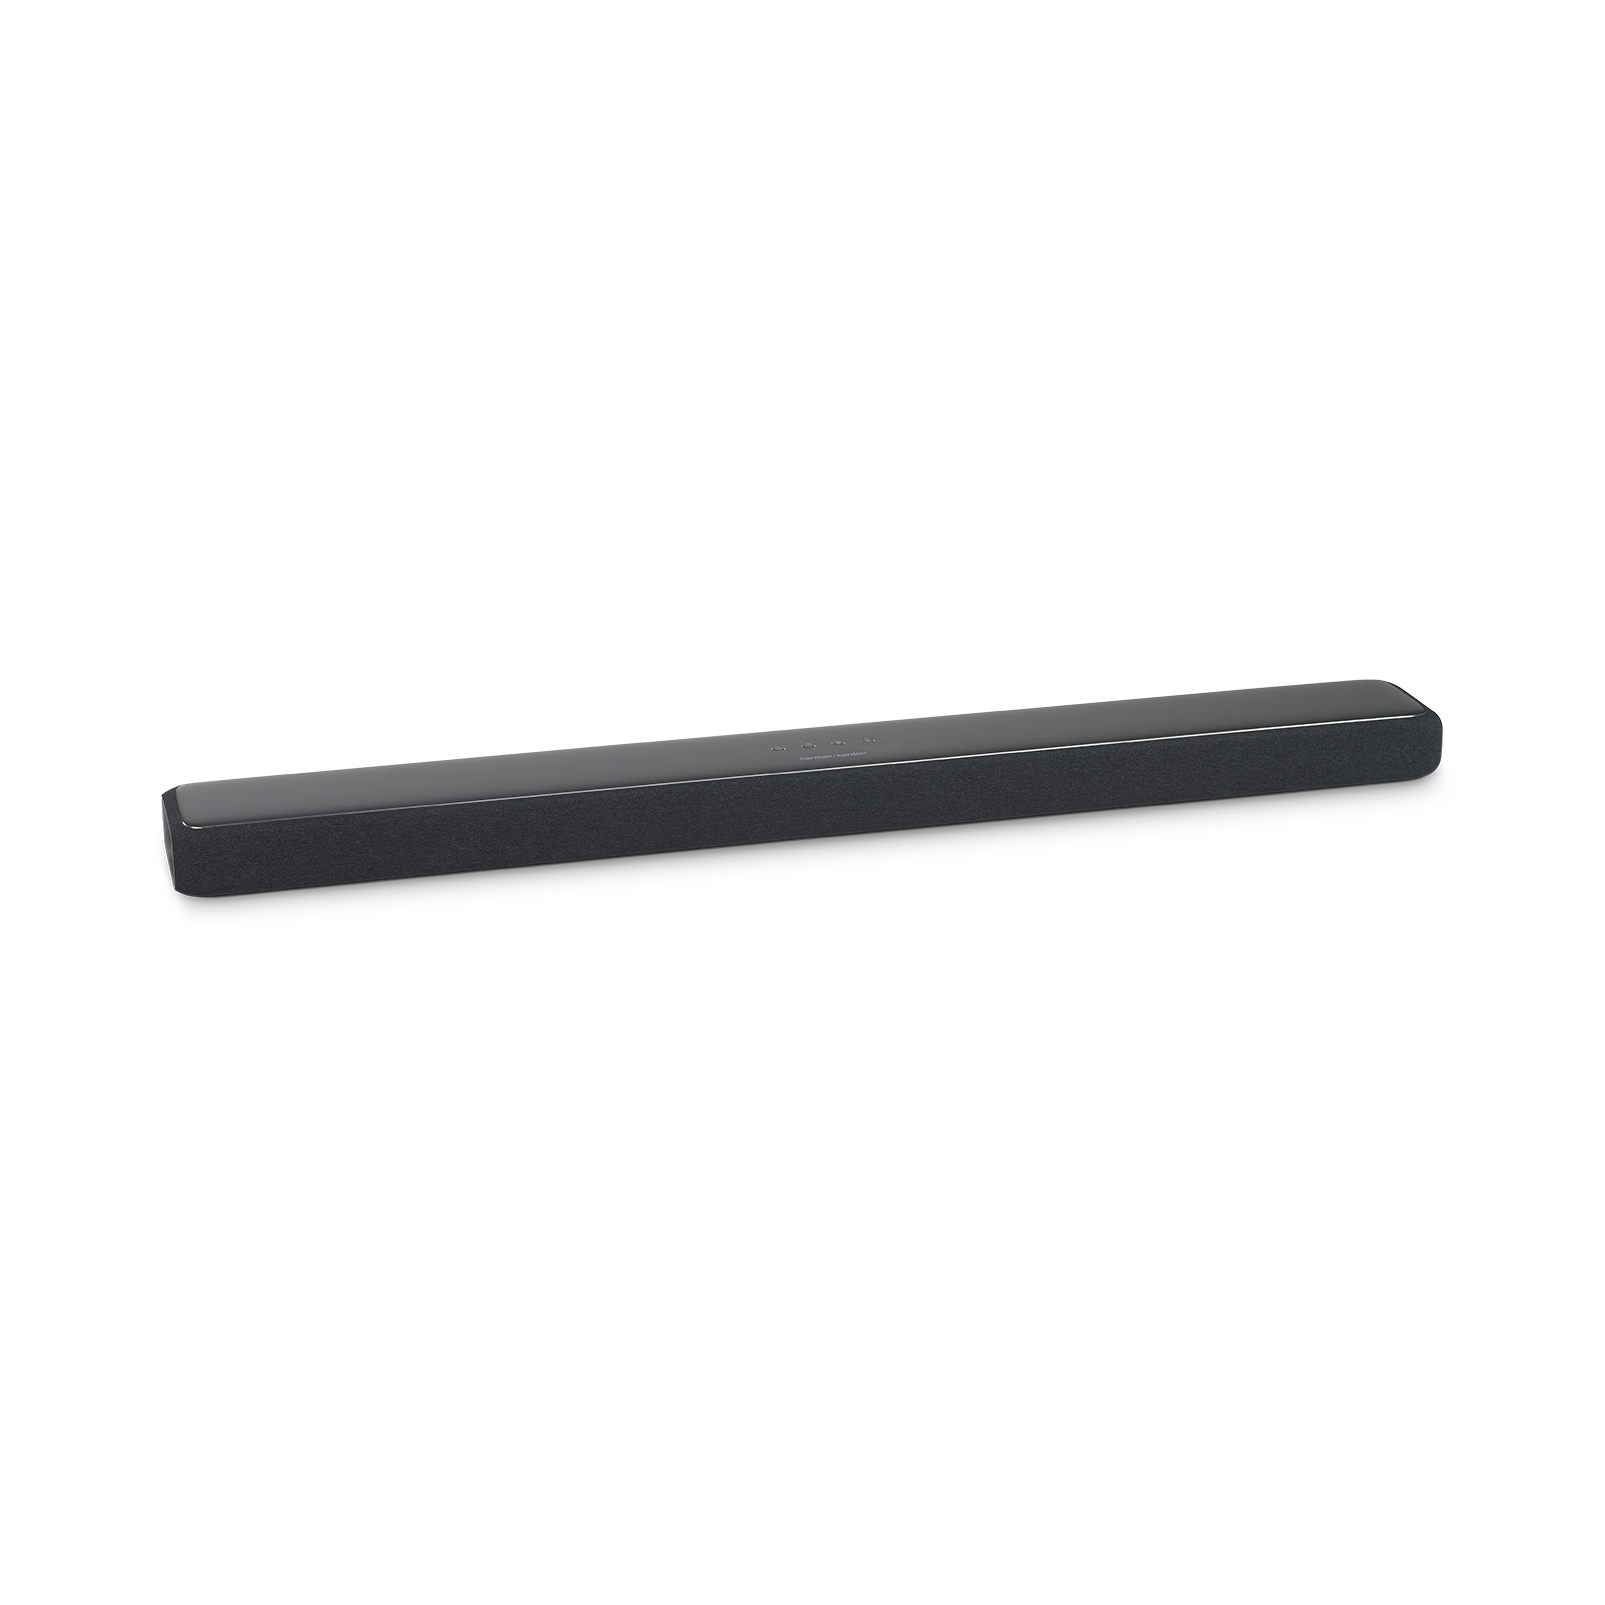 Enchant 1300 - Graphite - All in One 13-Channel Soundbar with MultiBeam™ Surround Sound - Hero